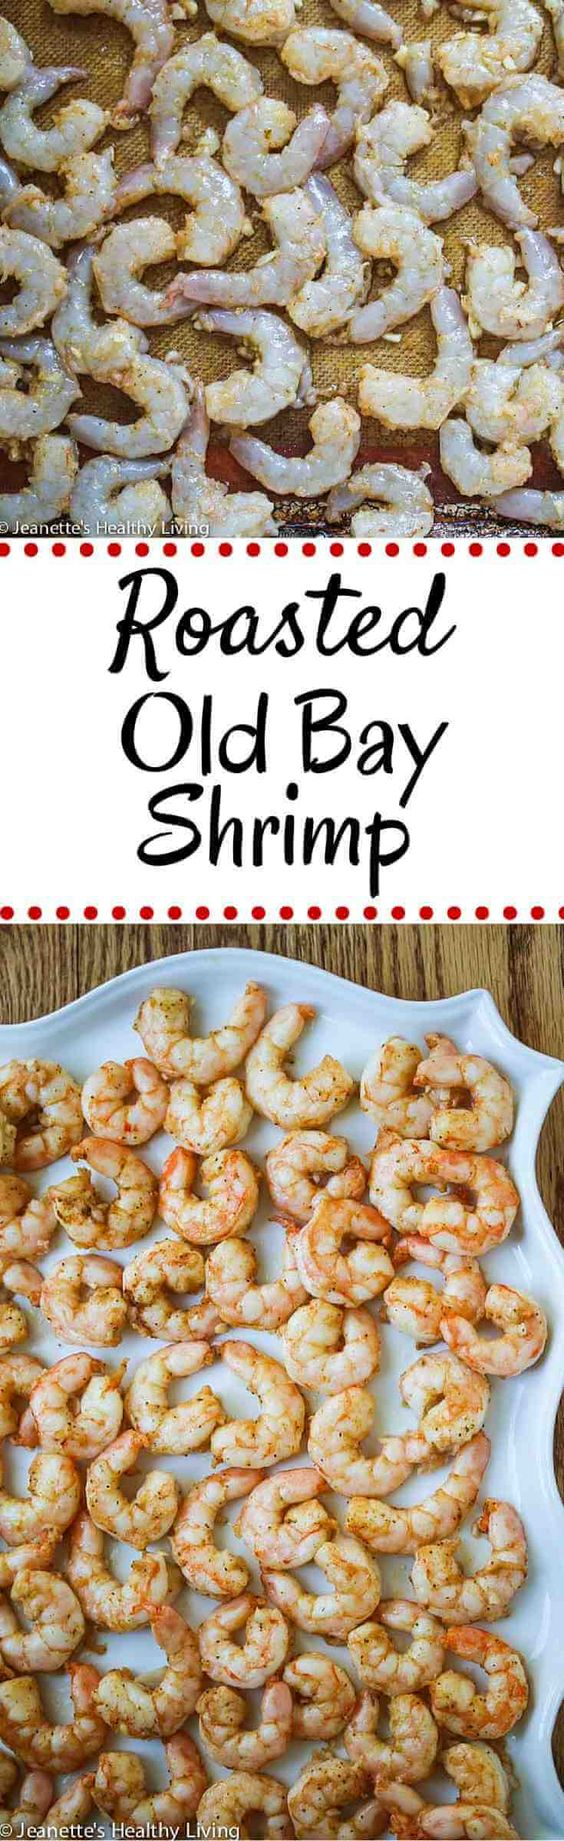 Roasted Old Bay Shrimp - these are so delicious and easy to make - perfect for a quick appetizer ~ http://jeanetteshealthyliving.com